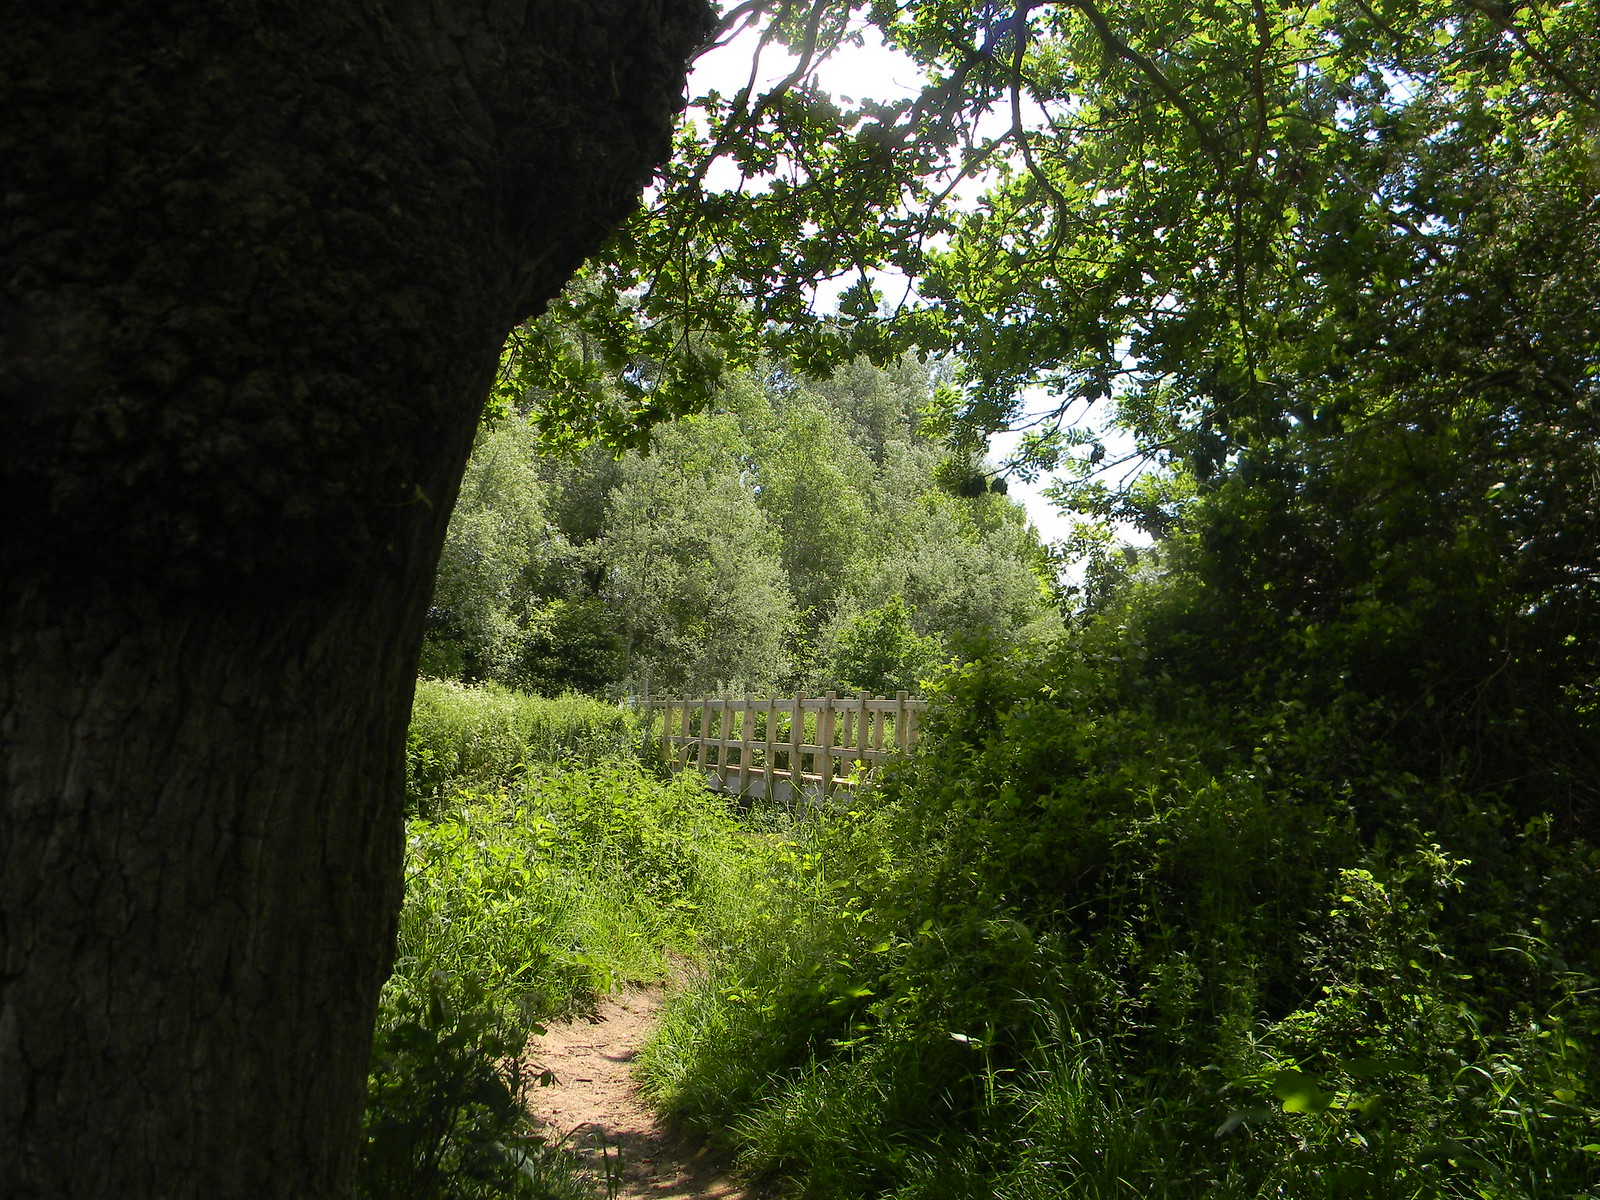 Glimpse of a bridge Uckfield to Lewes